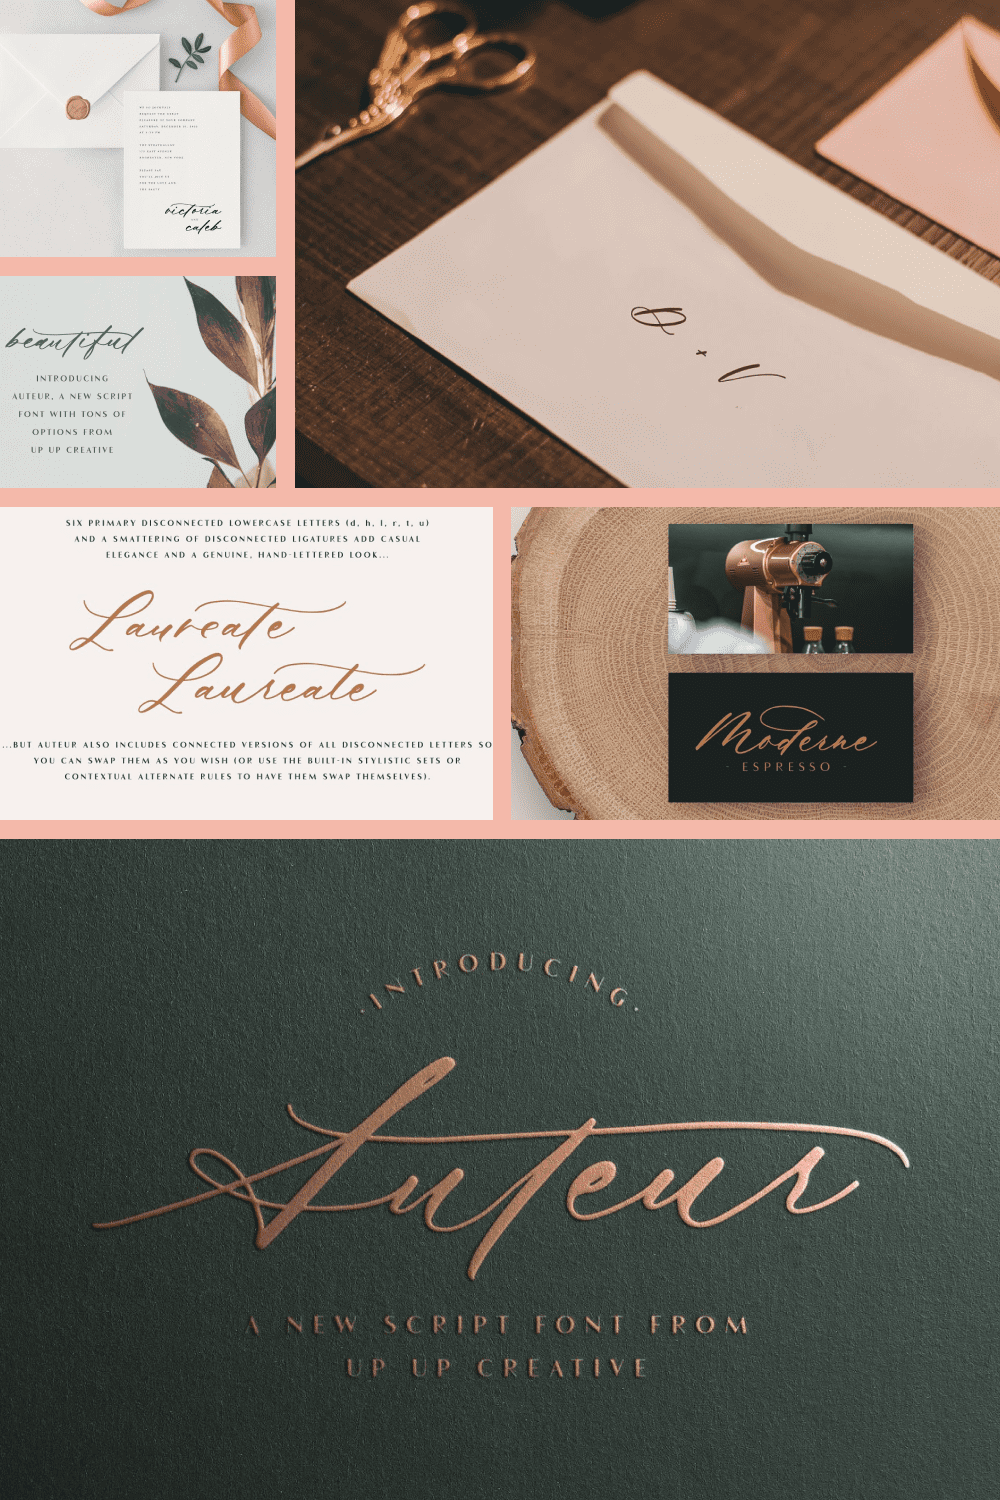 This is a very nice font. Embossed gold lettering on a matte background.